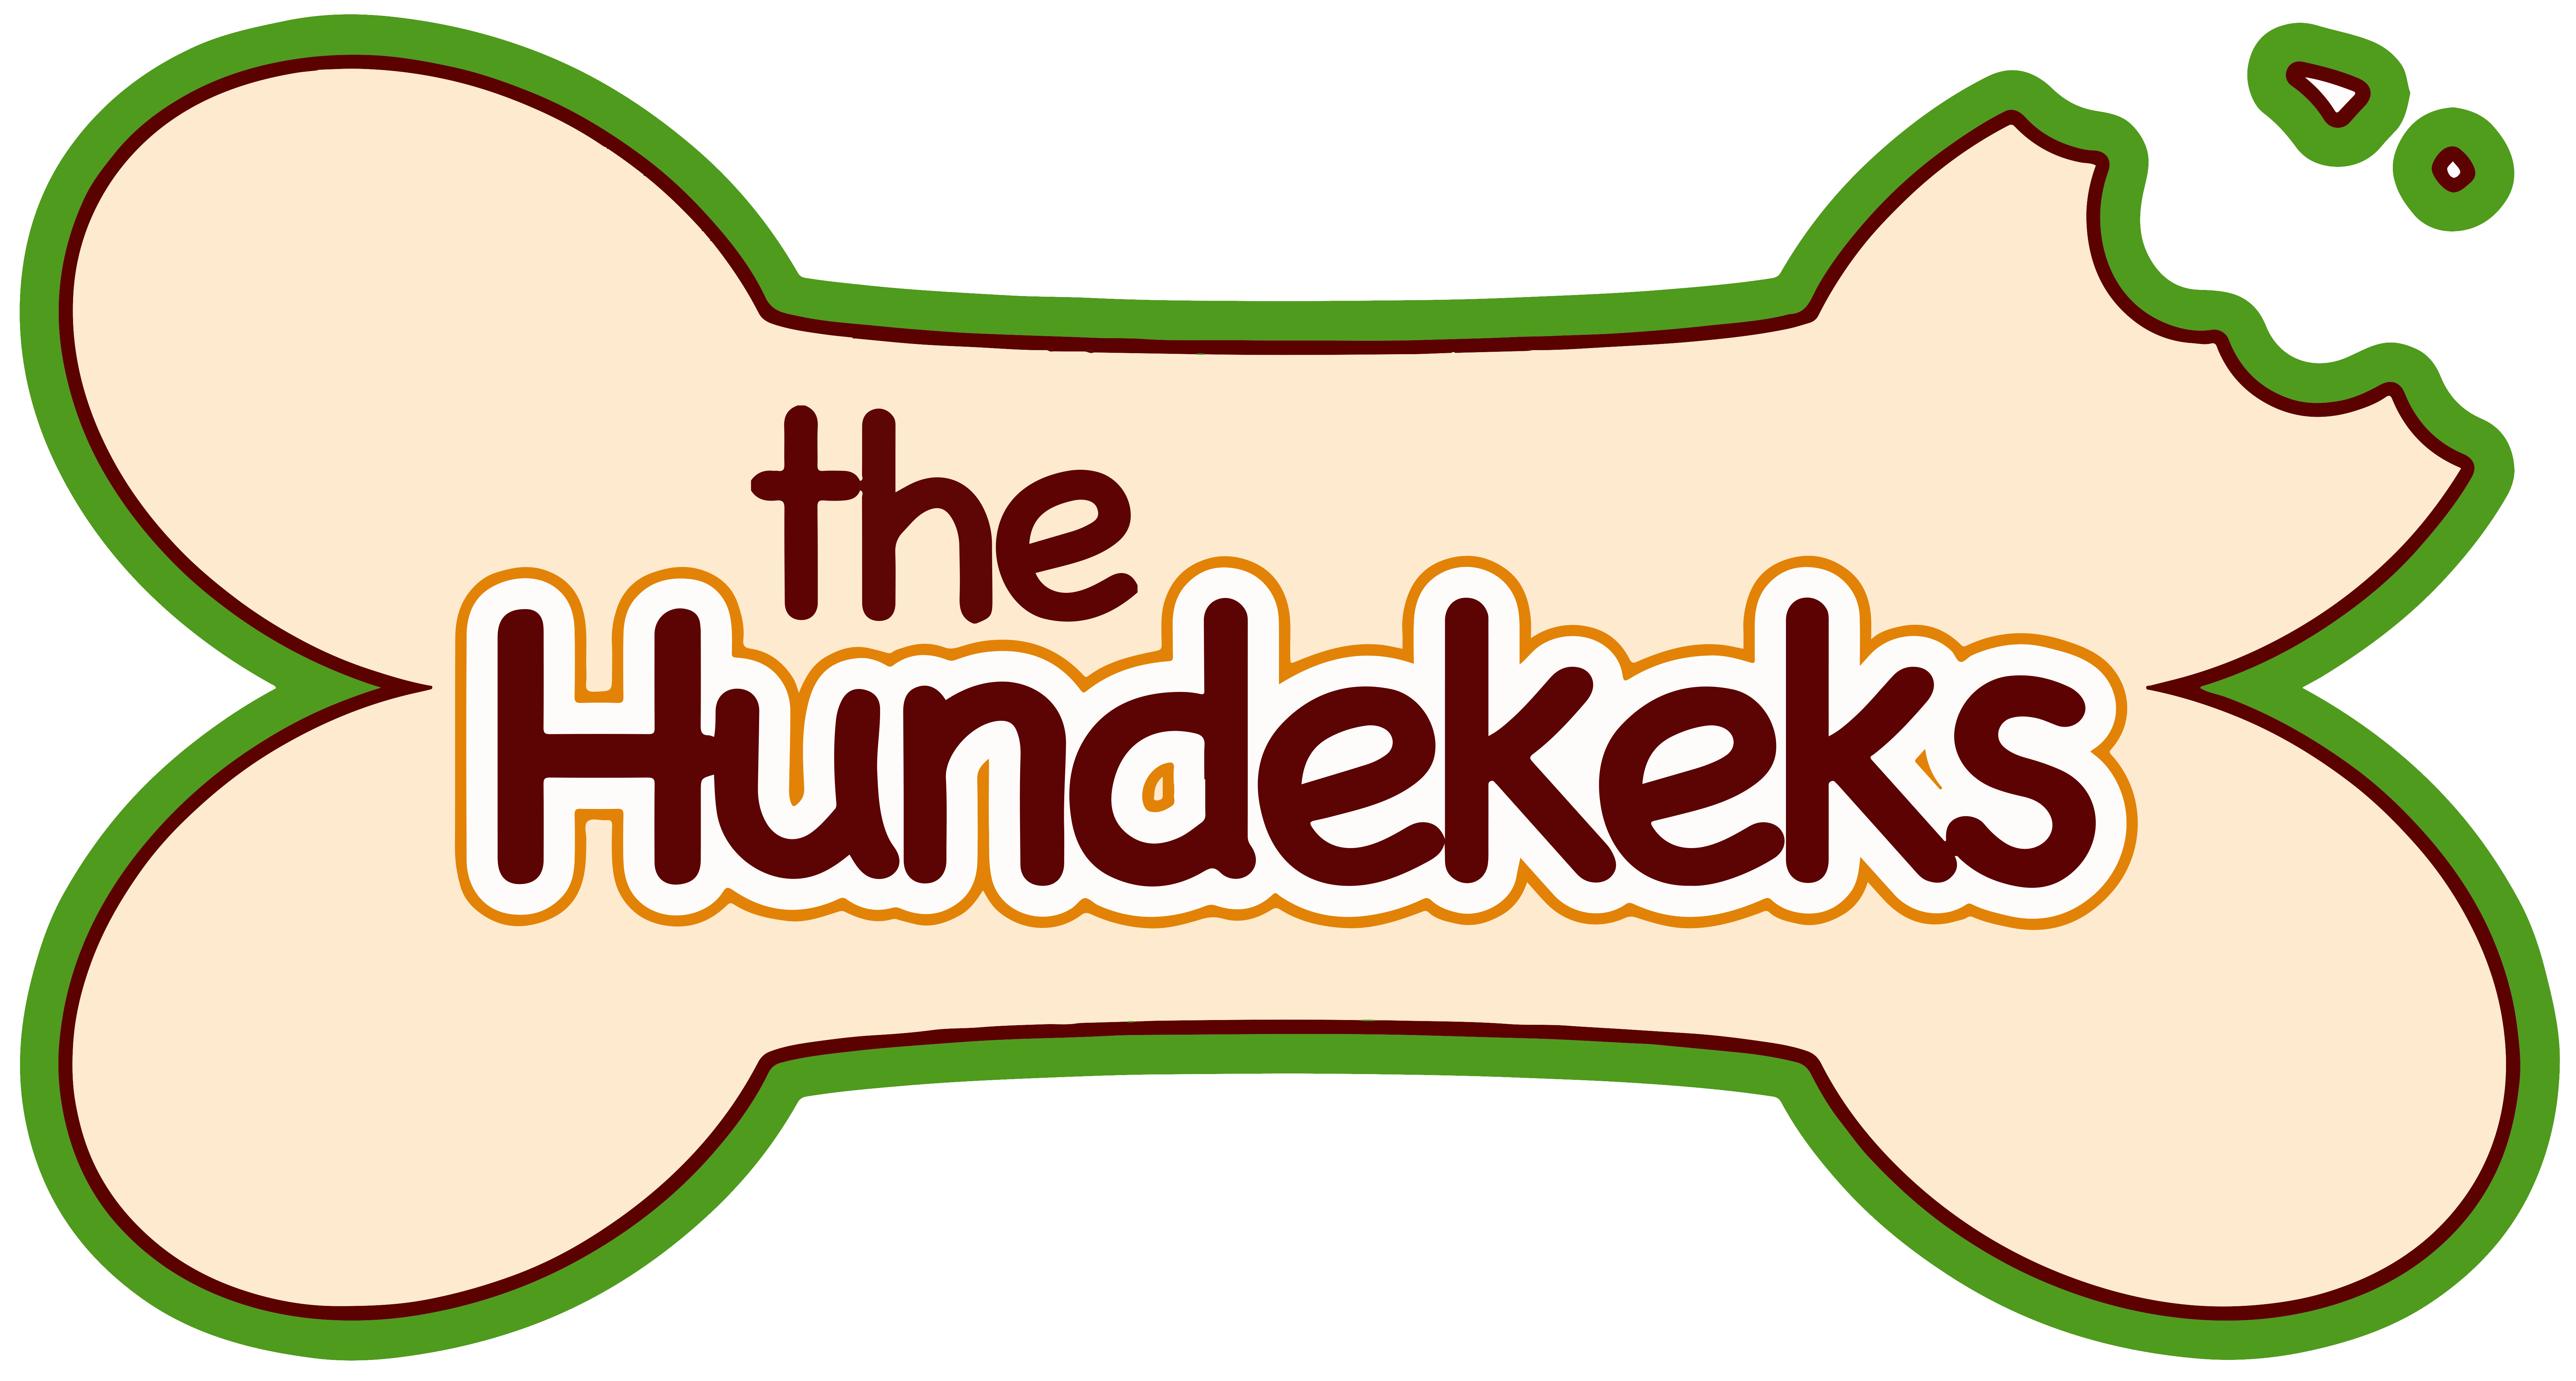 The Hundekeks